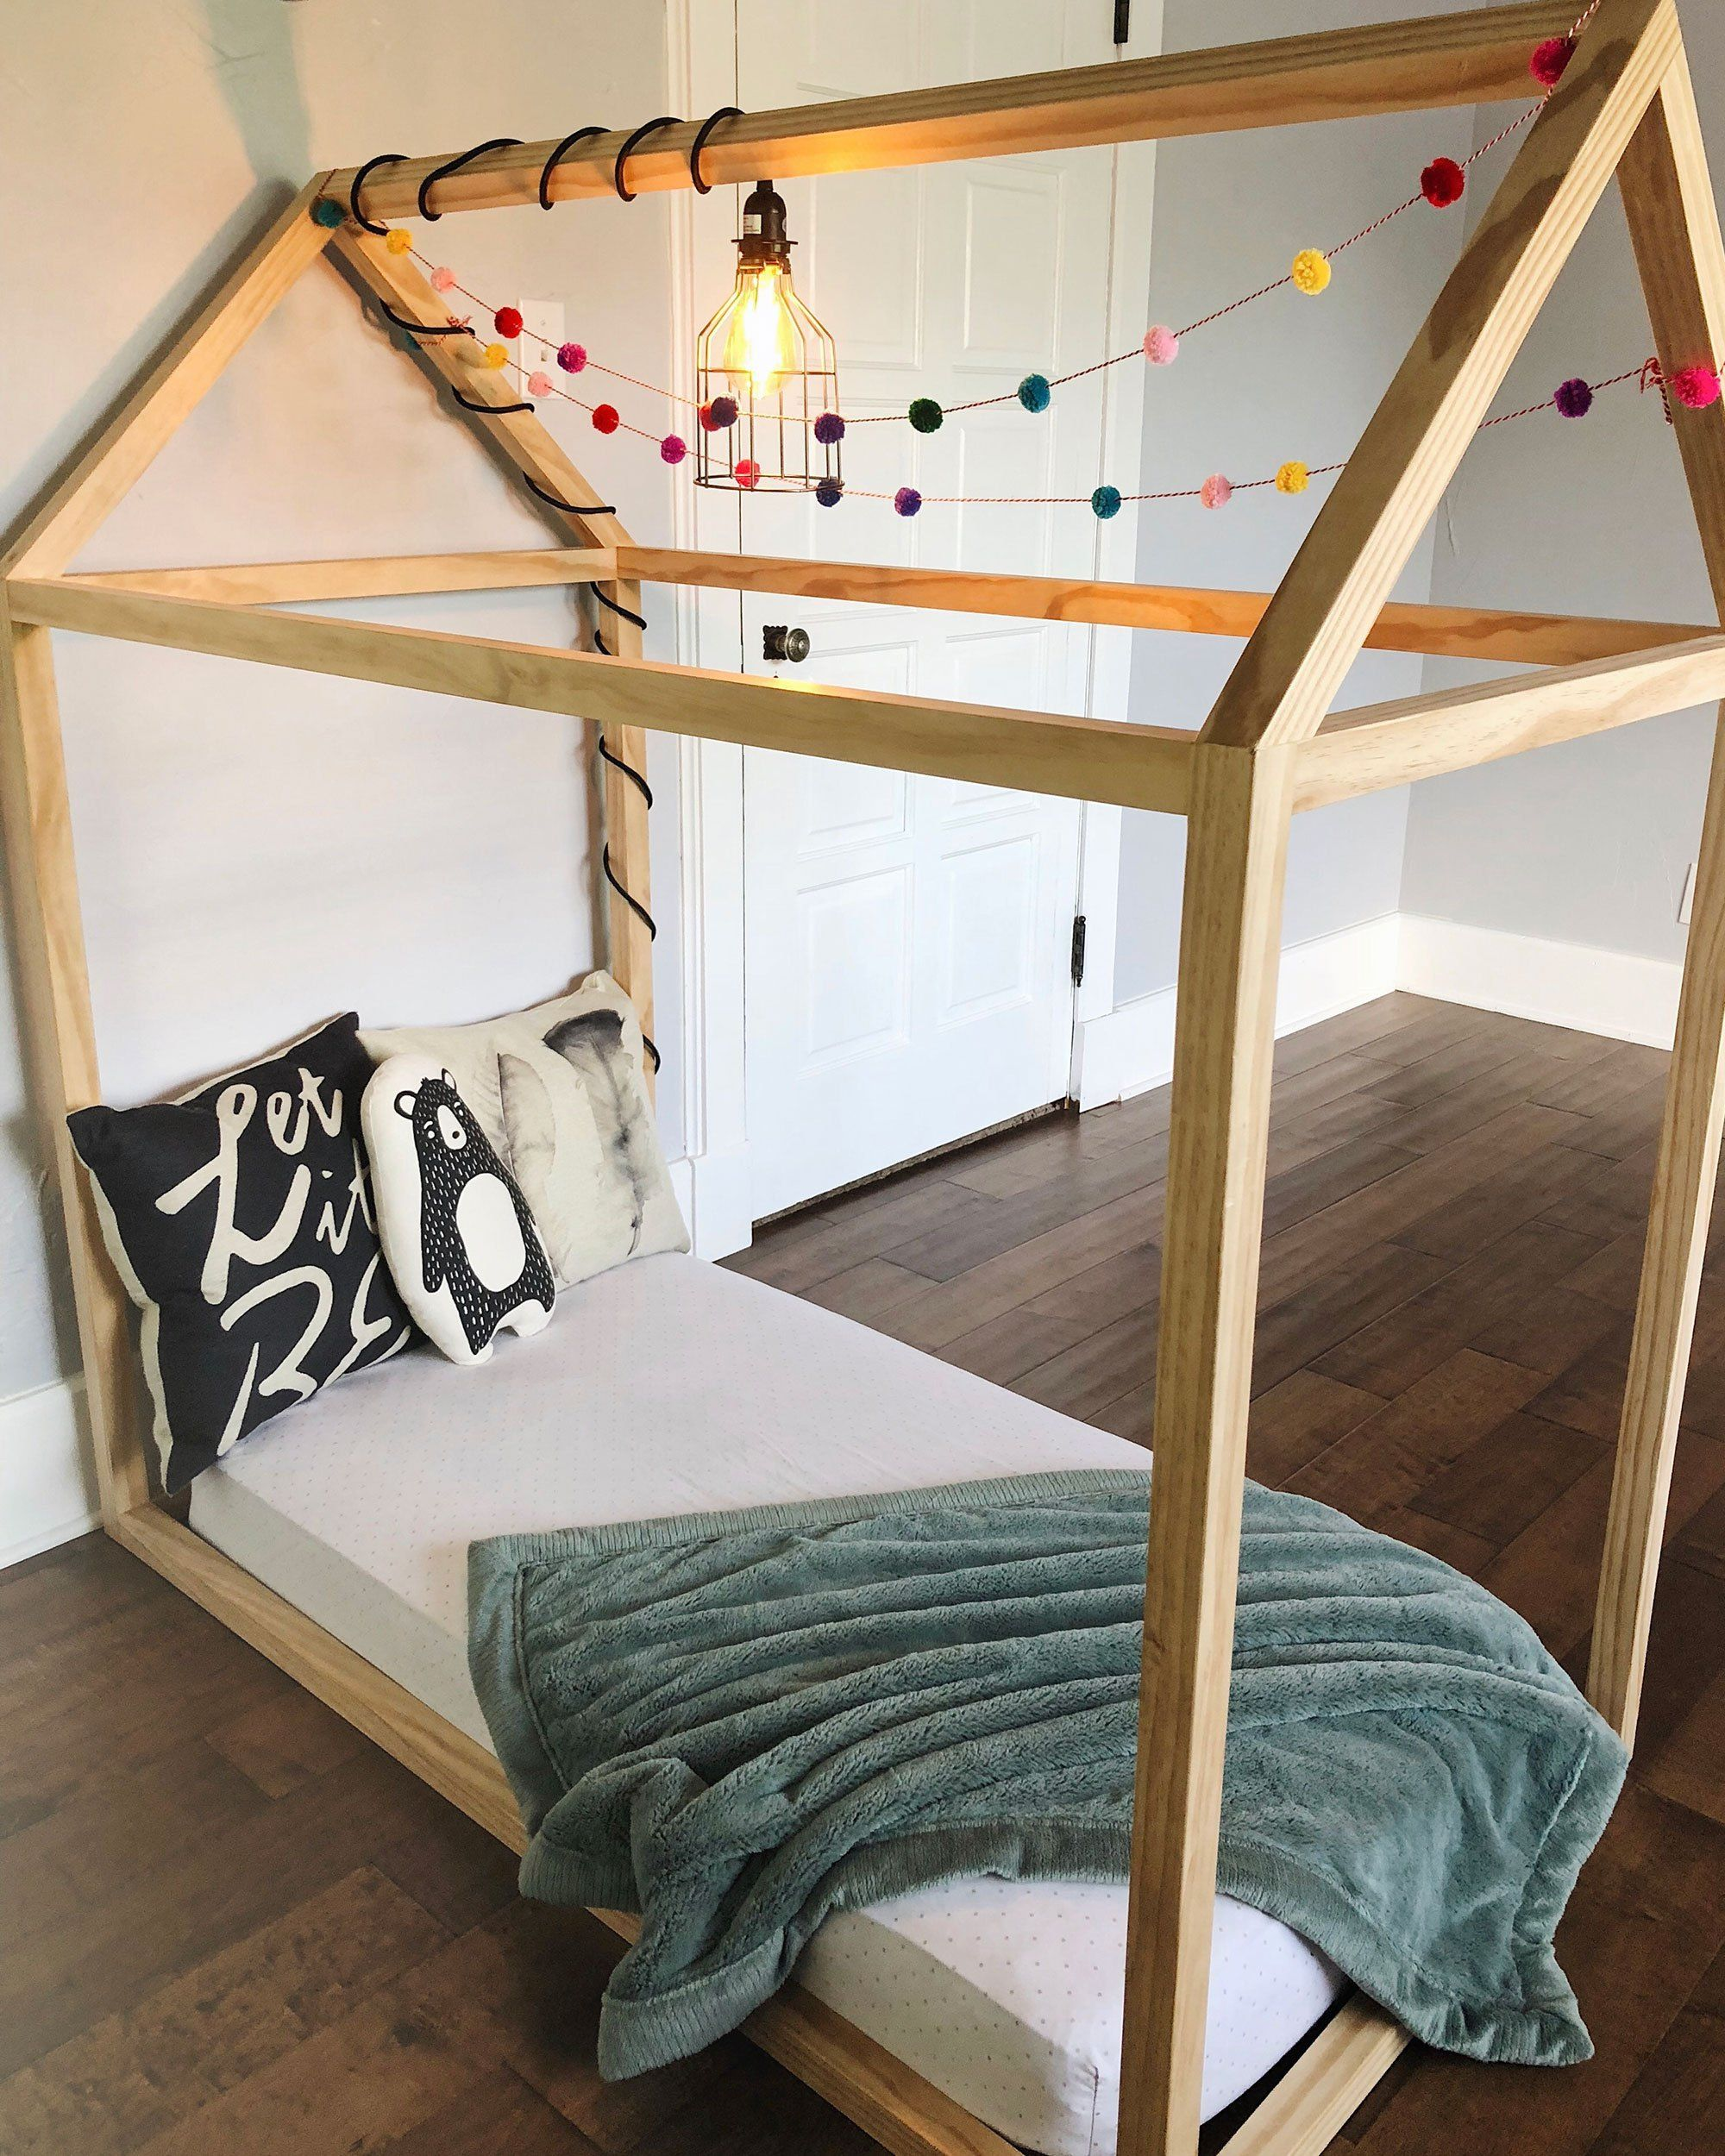 Diy Toddler House Bed With Images House Beds For Kids Toddler